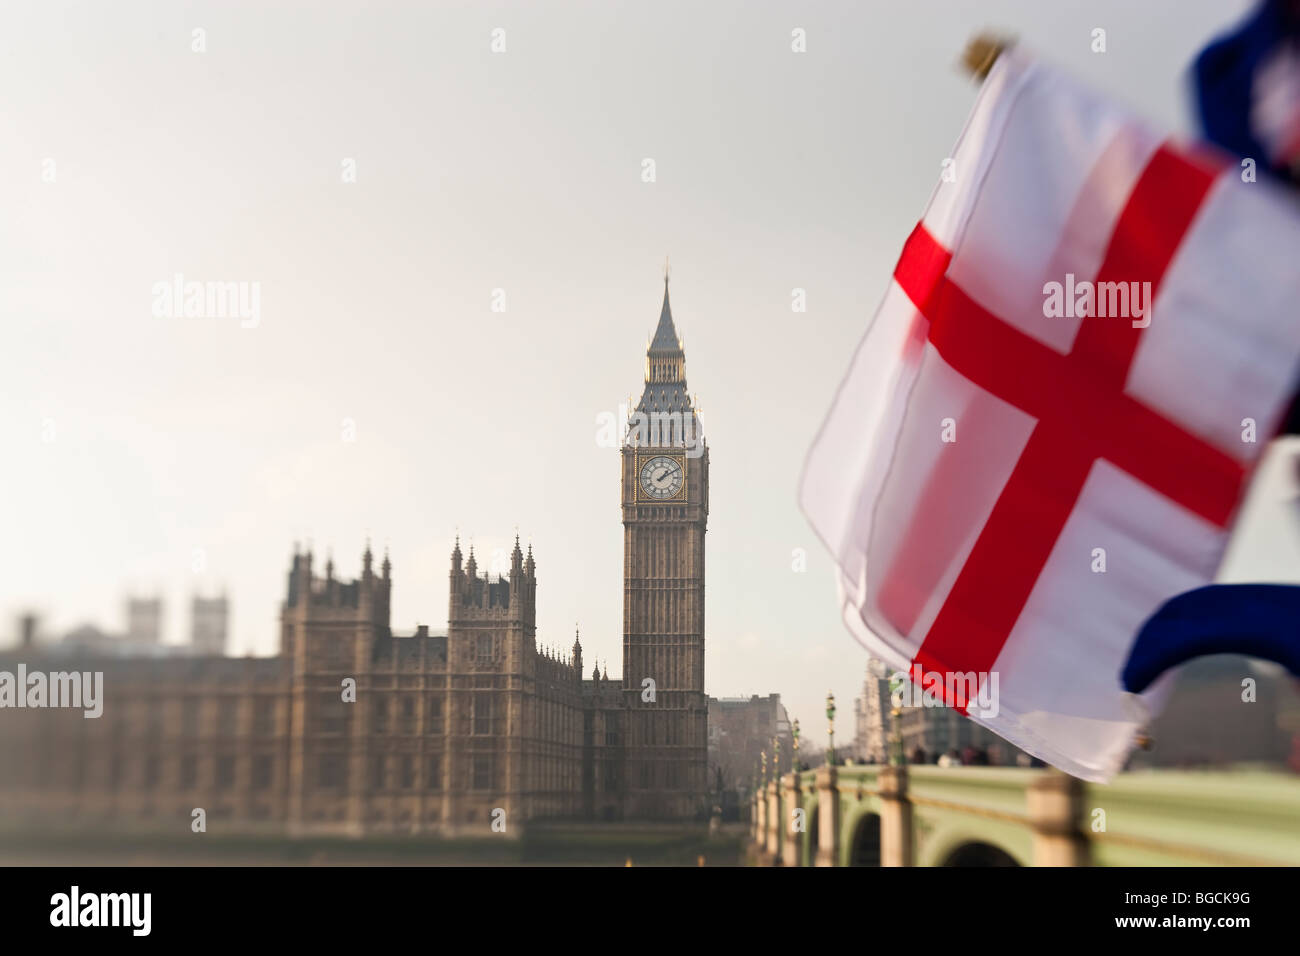 Houses of Parliment, Westminster, London, UK - Stock Image